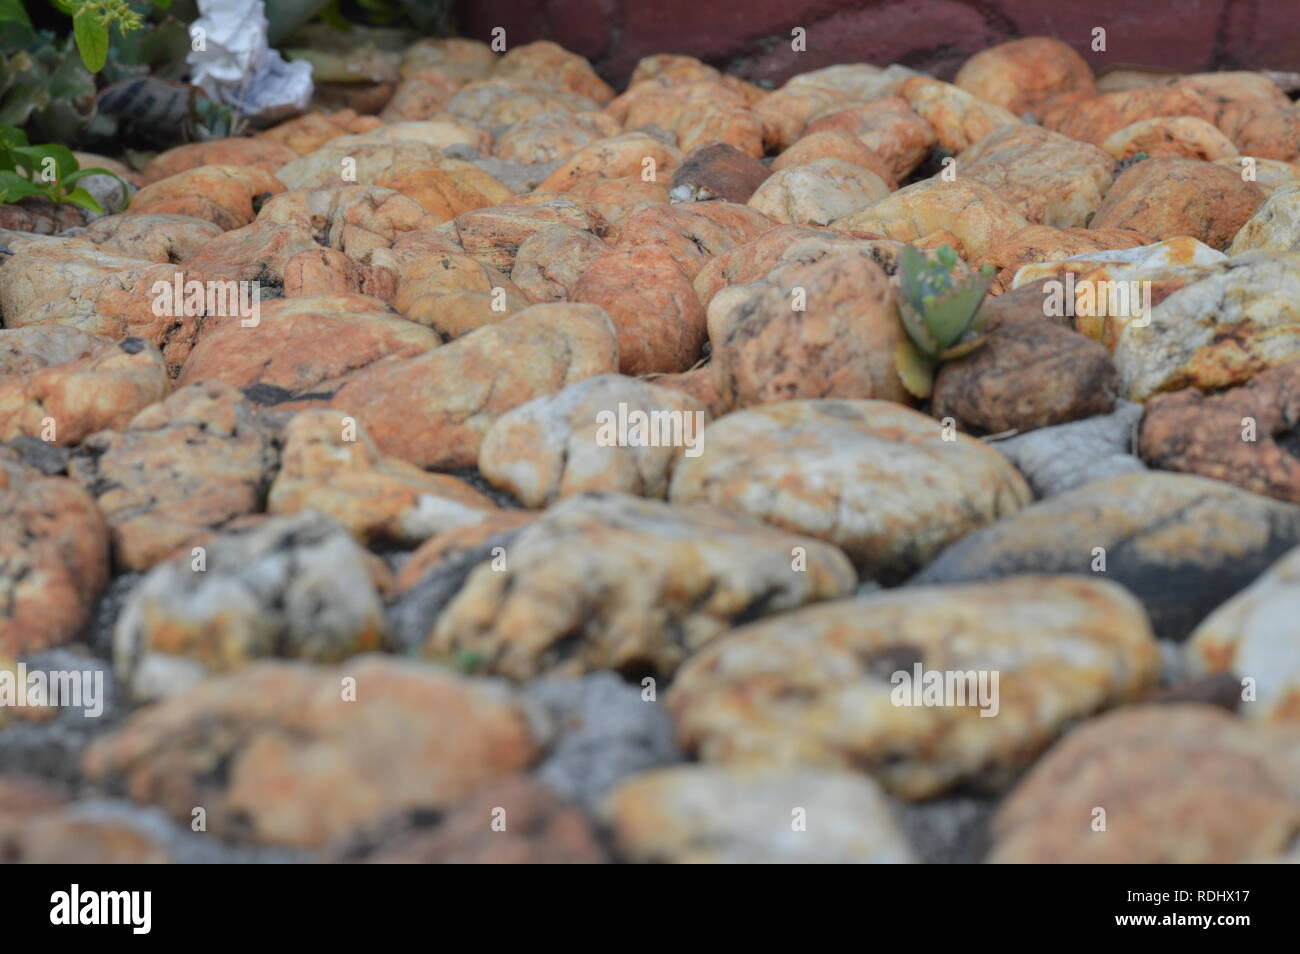 Brown / bronze stones and rocks on the ground - Stock Image